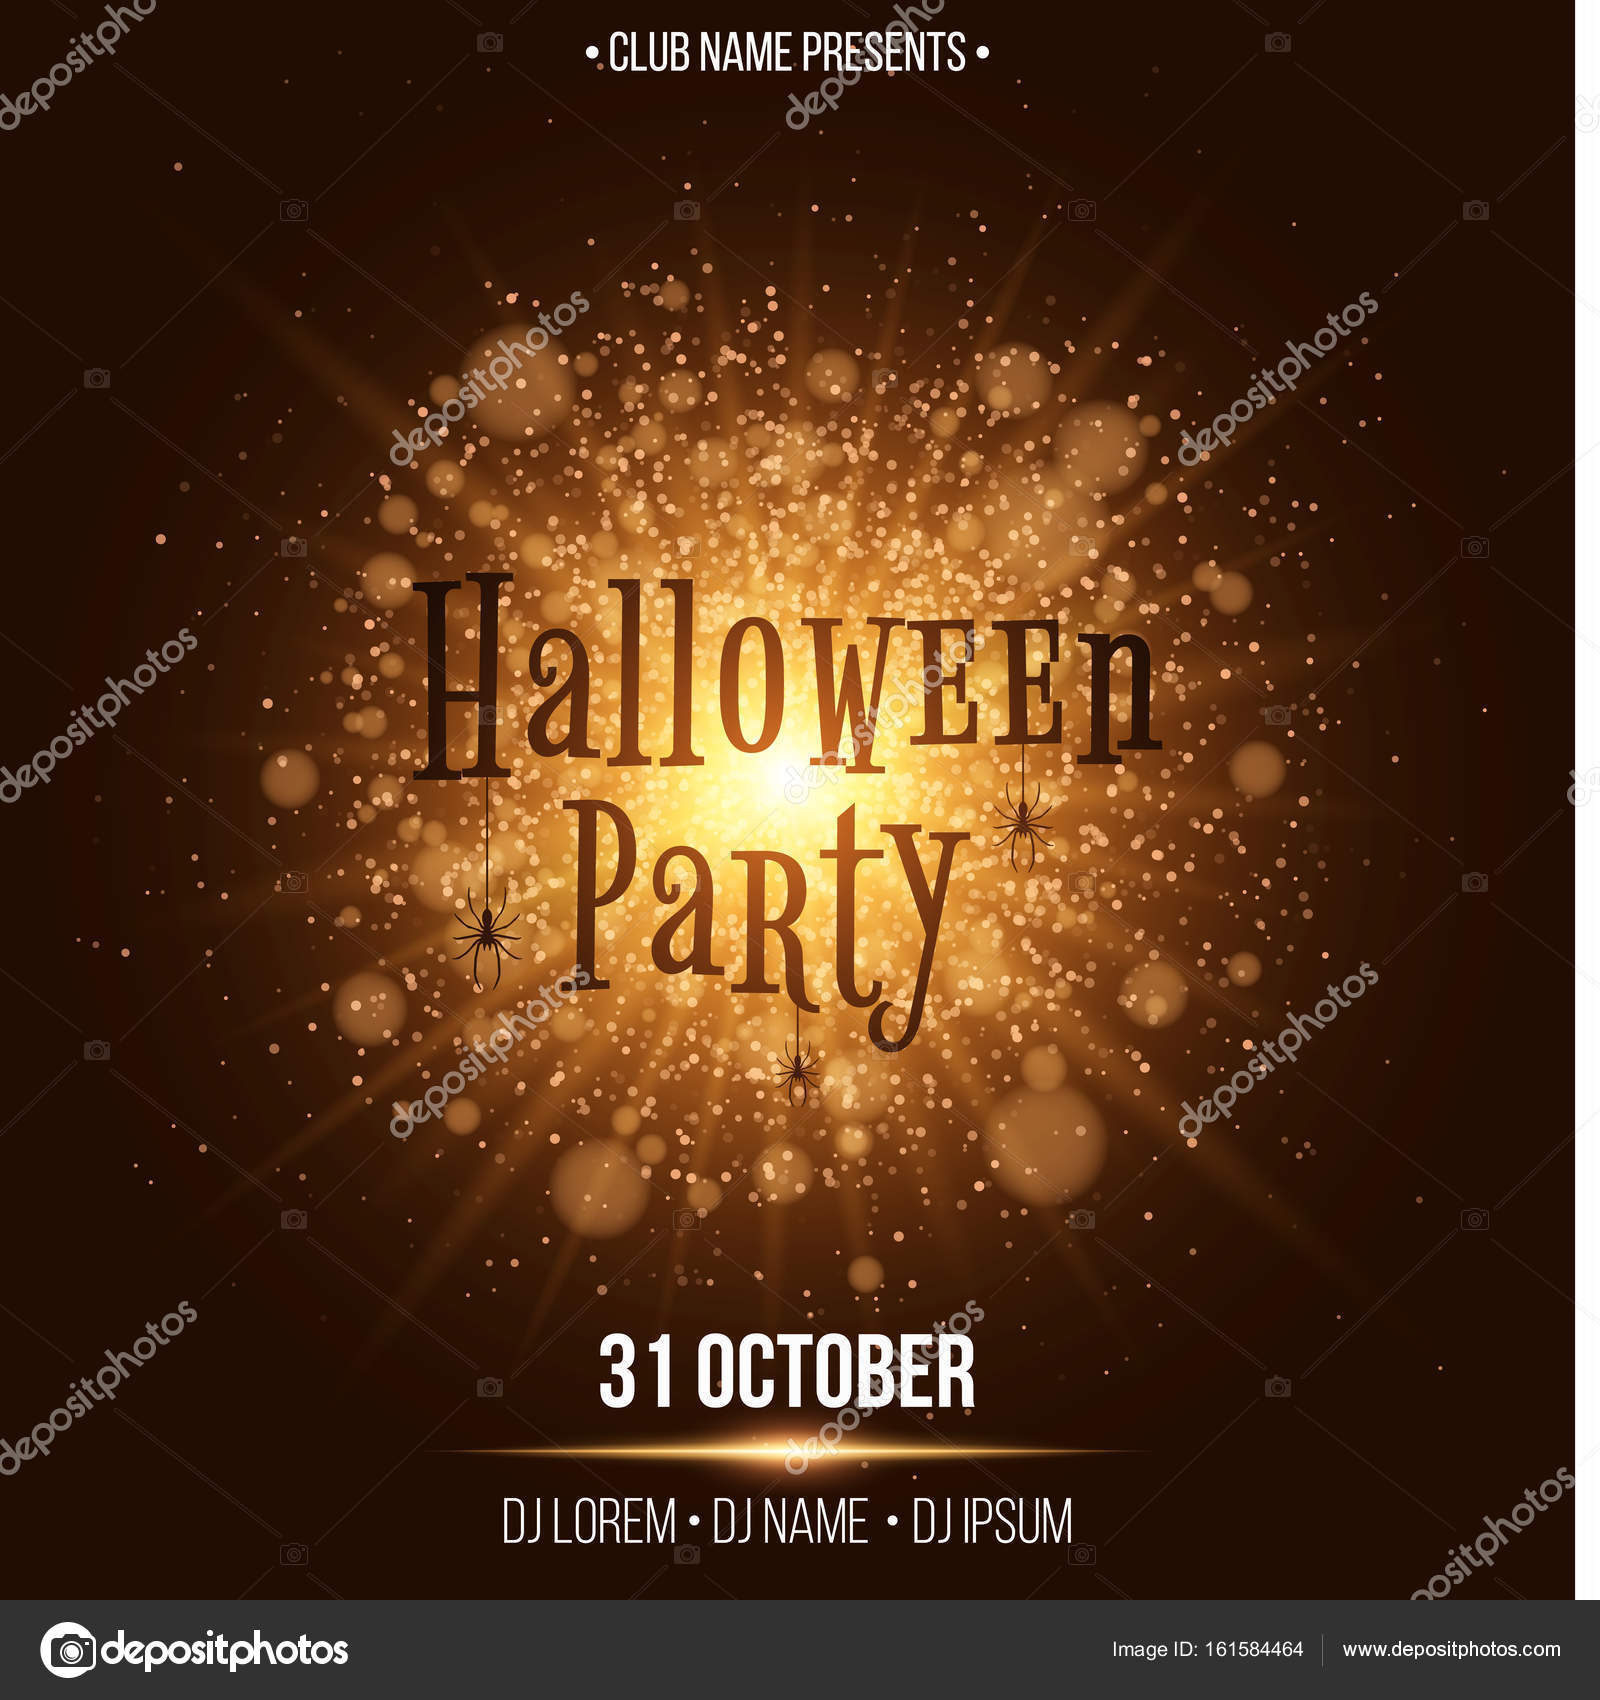 halloween party text in the style of horor abstract bright flash of light with golden lights black spiders names of the club and dj